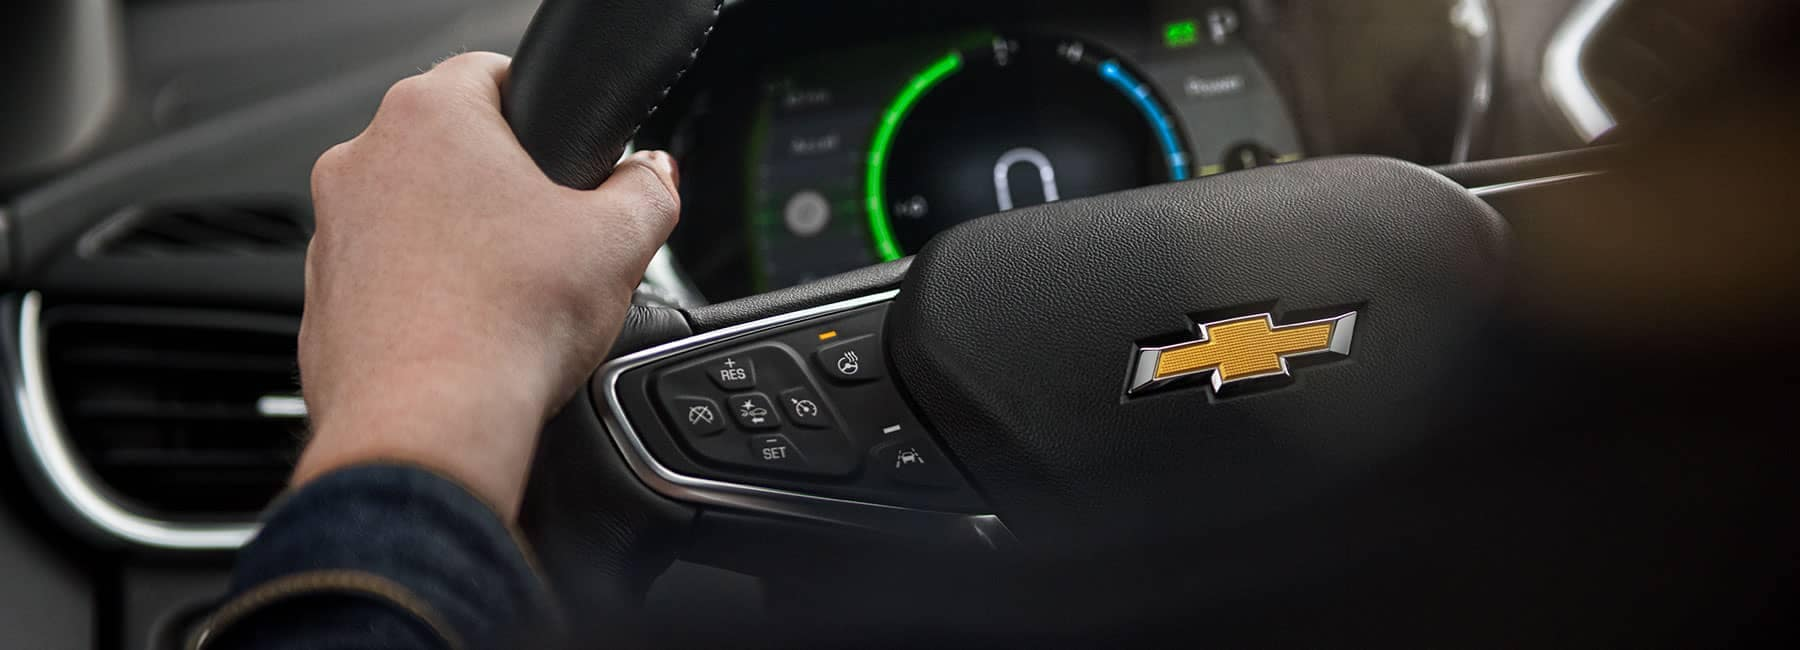 2019 Chevrolet steering wheel